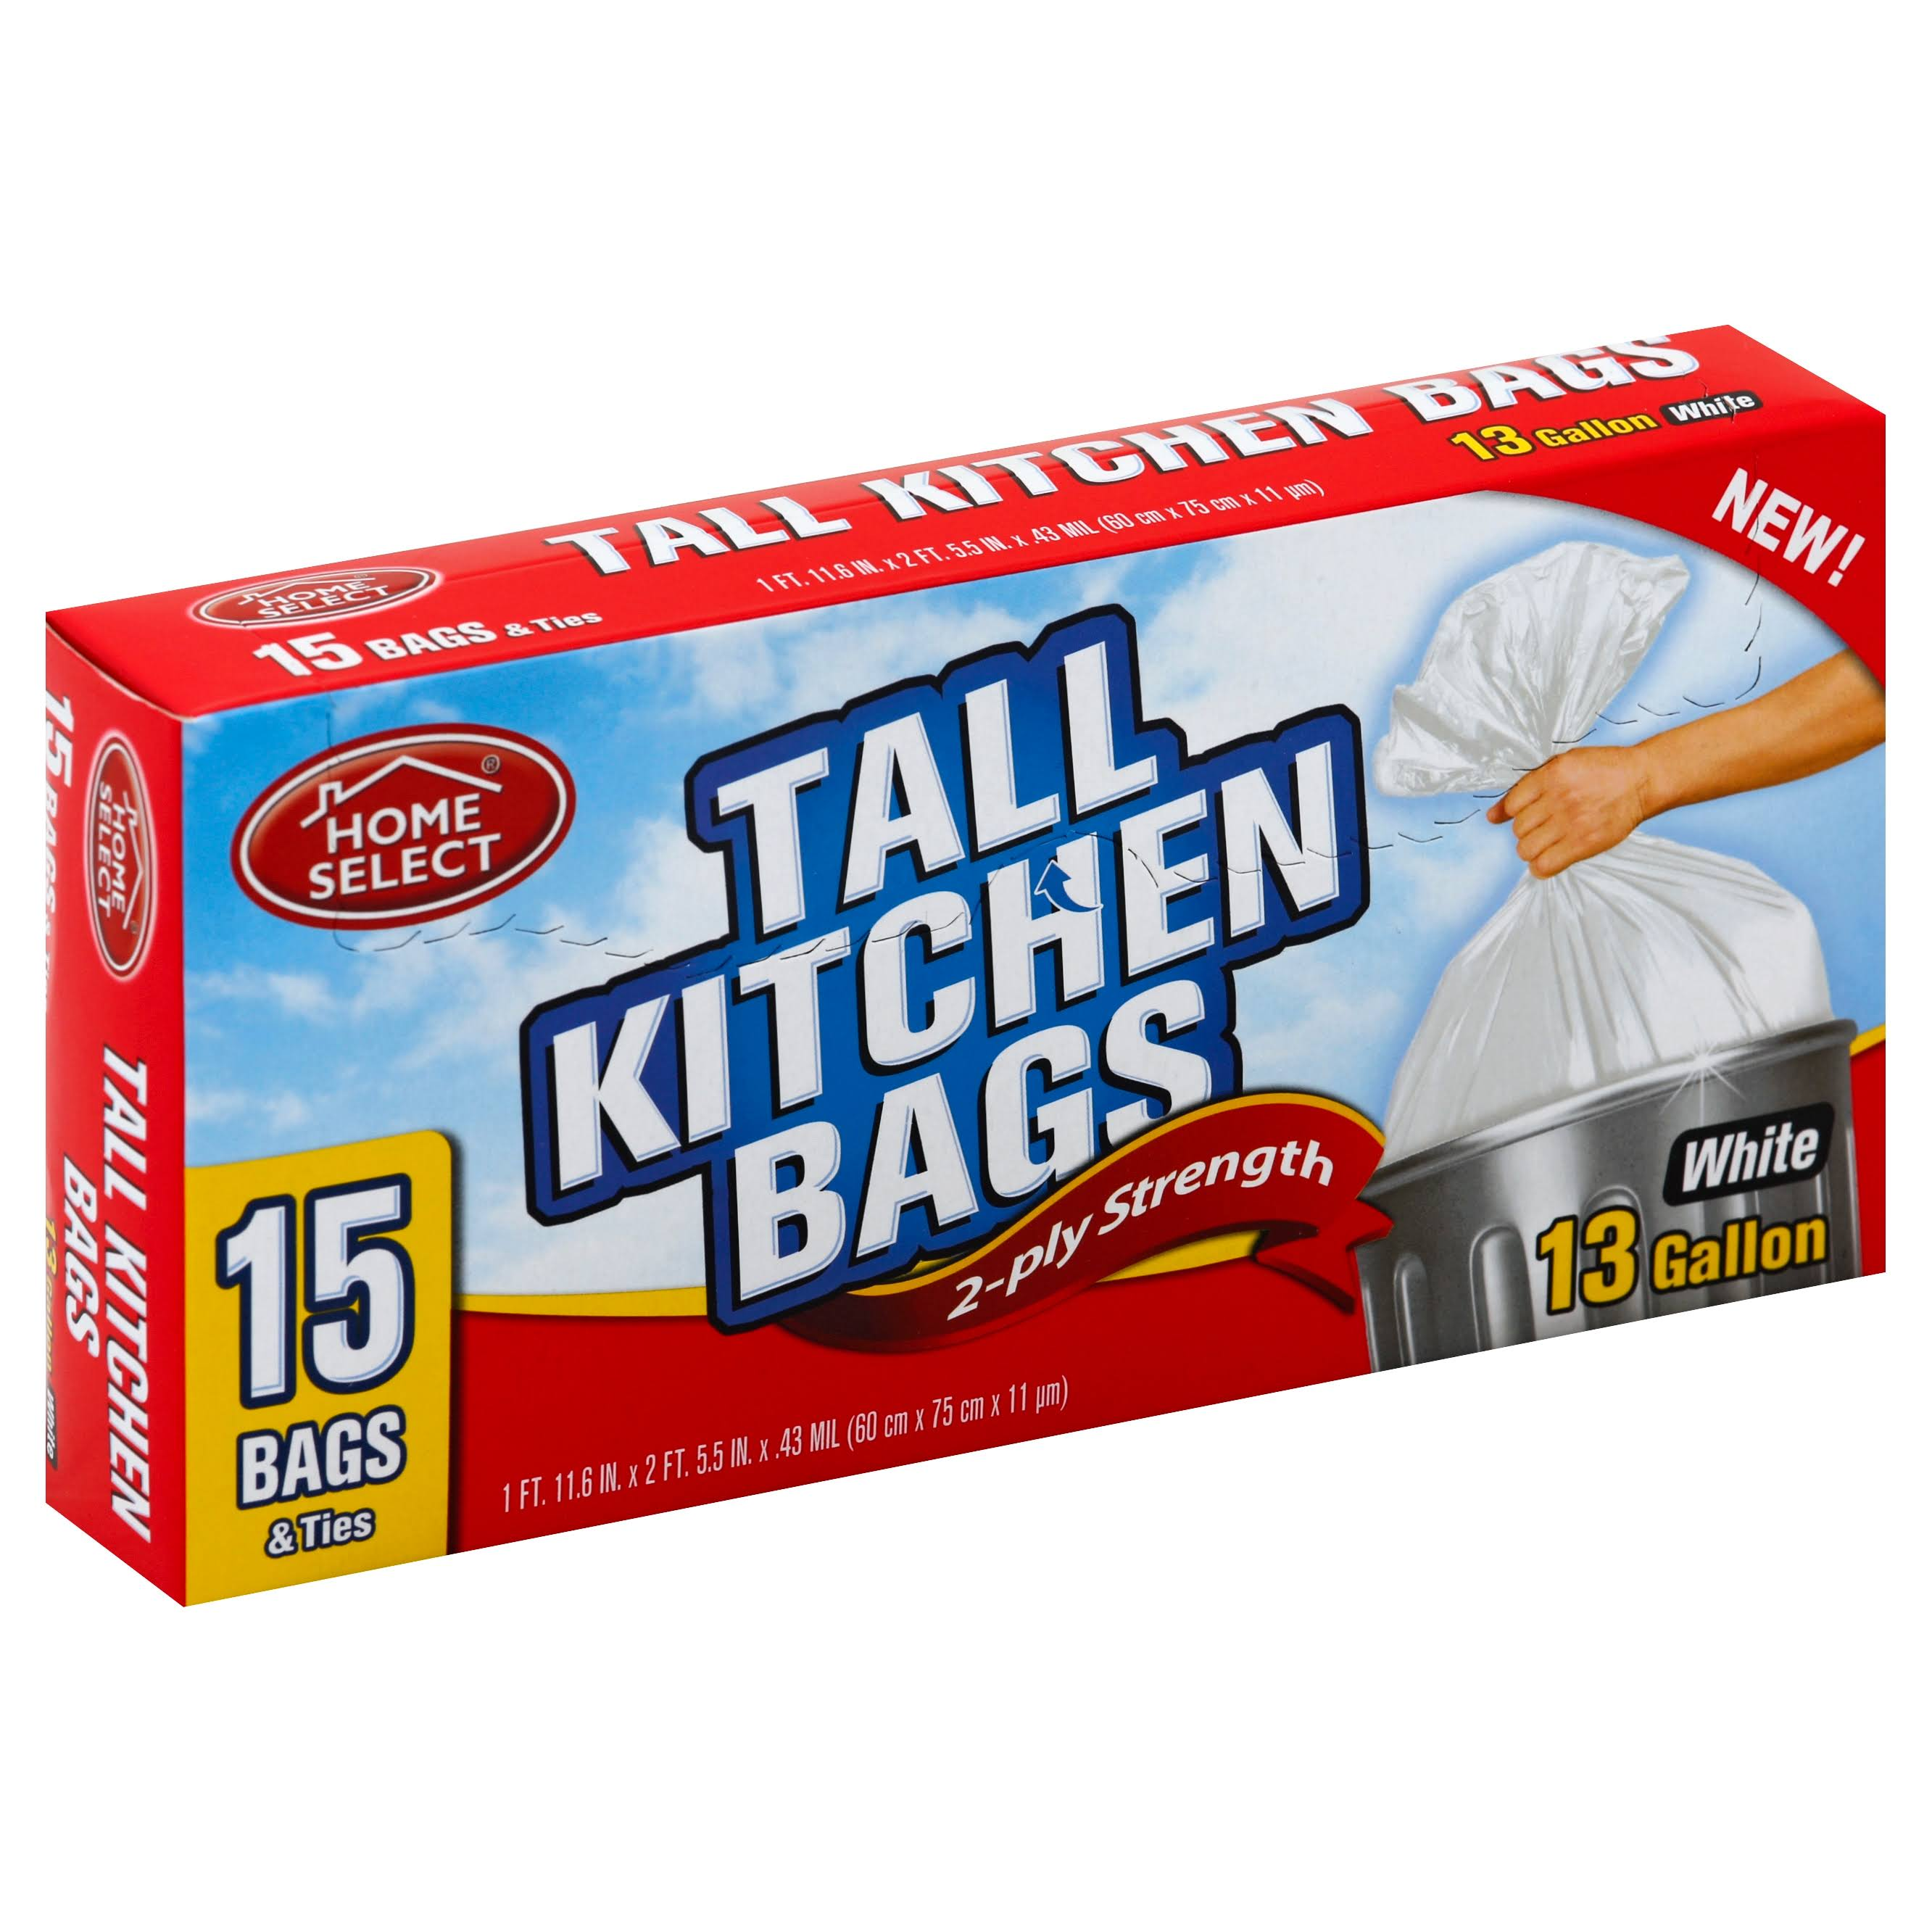 Home Select Tall Kitchen Bags, 2-Ply Strength, White, 13 Gallon - 15 bags & ties